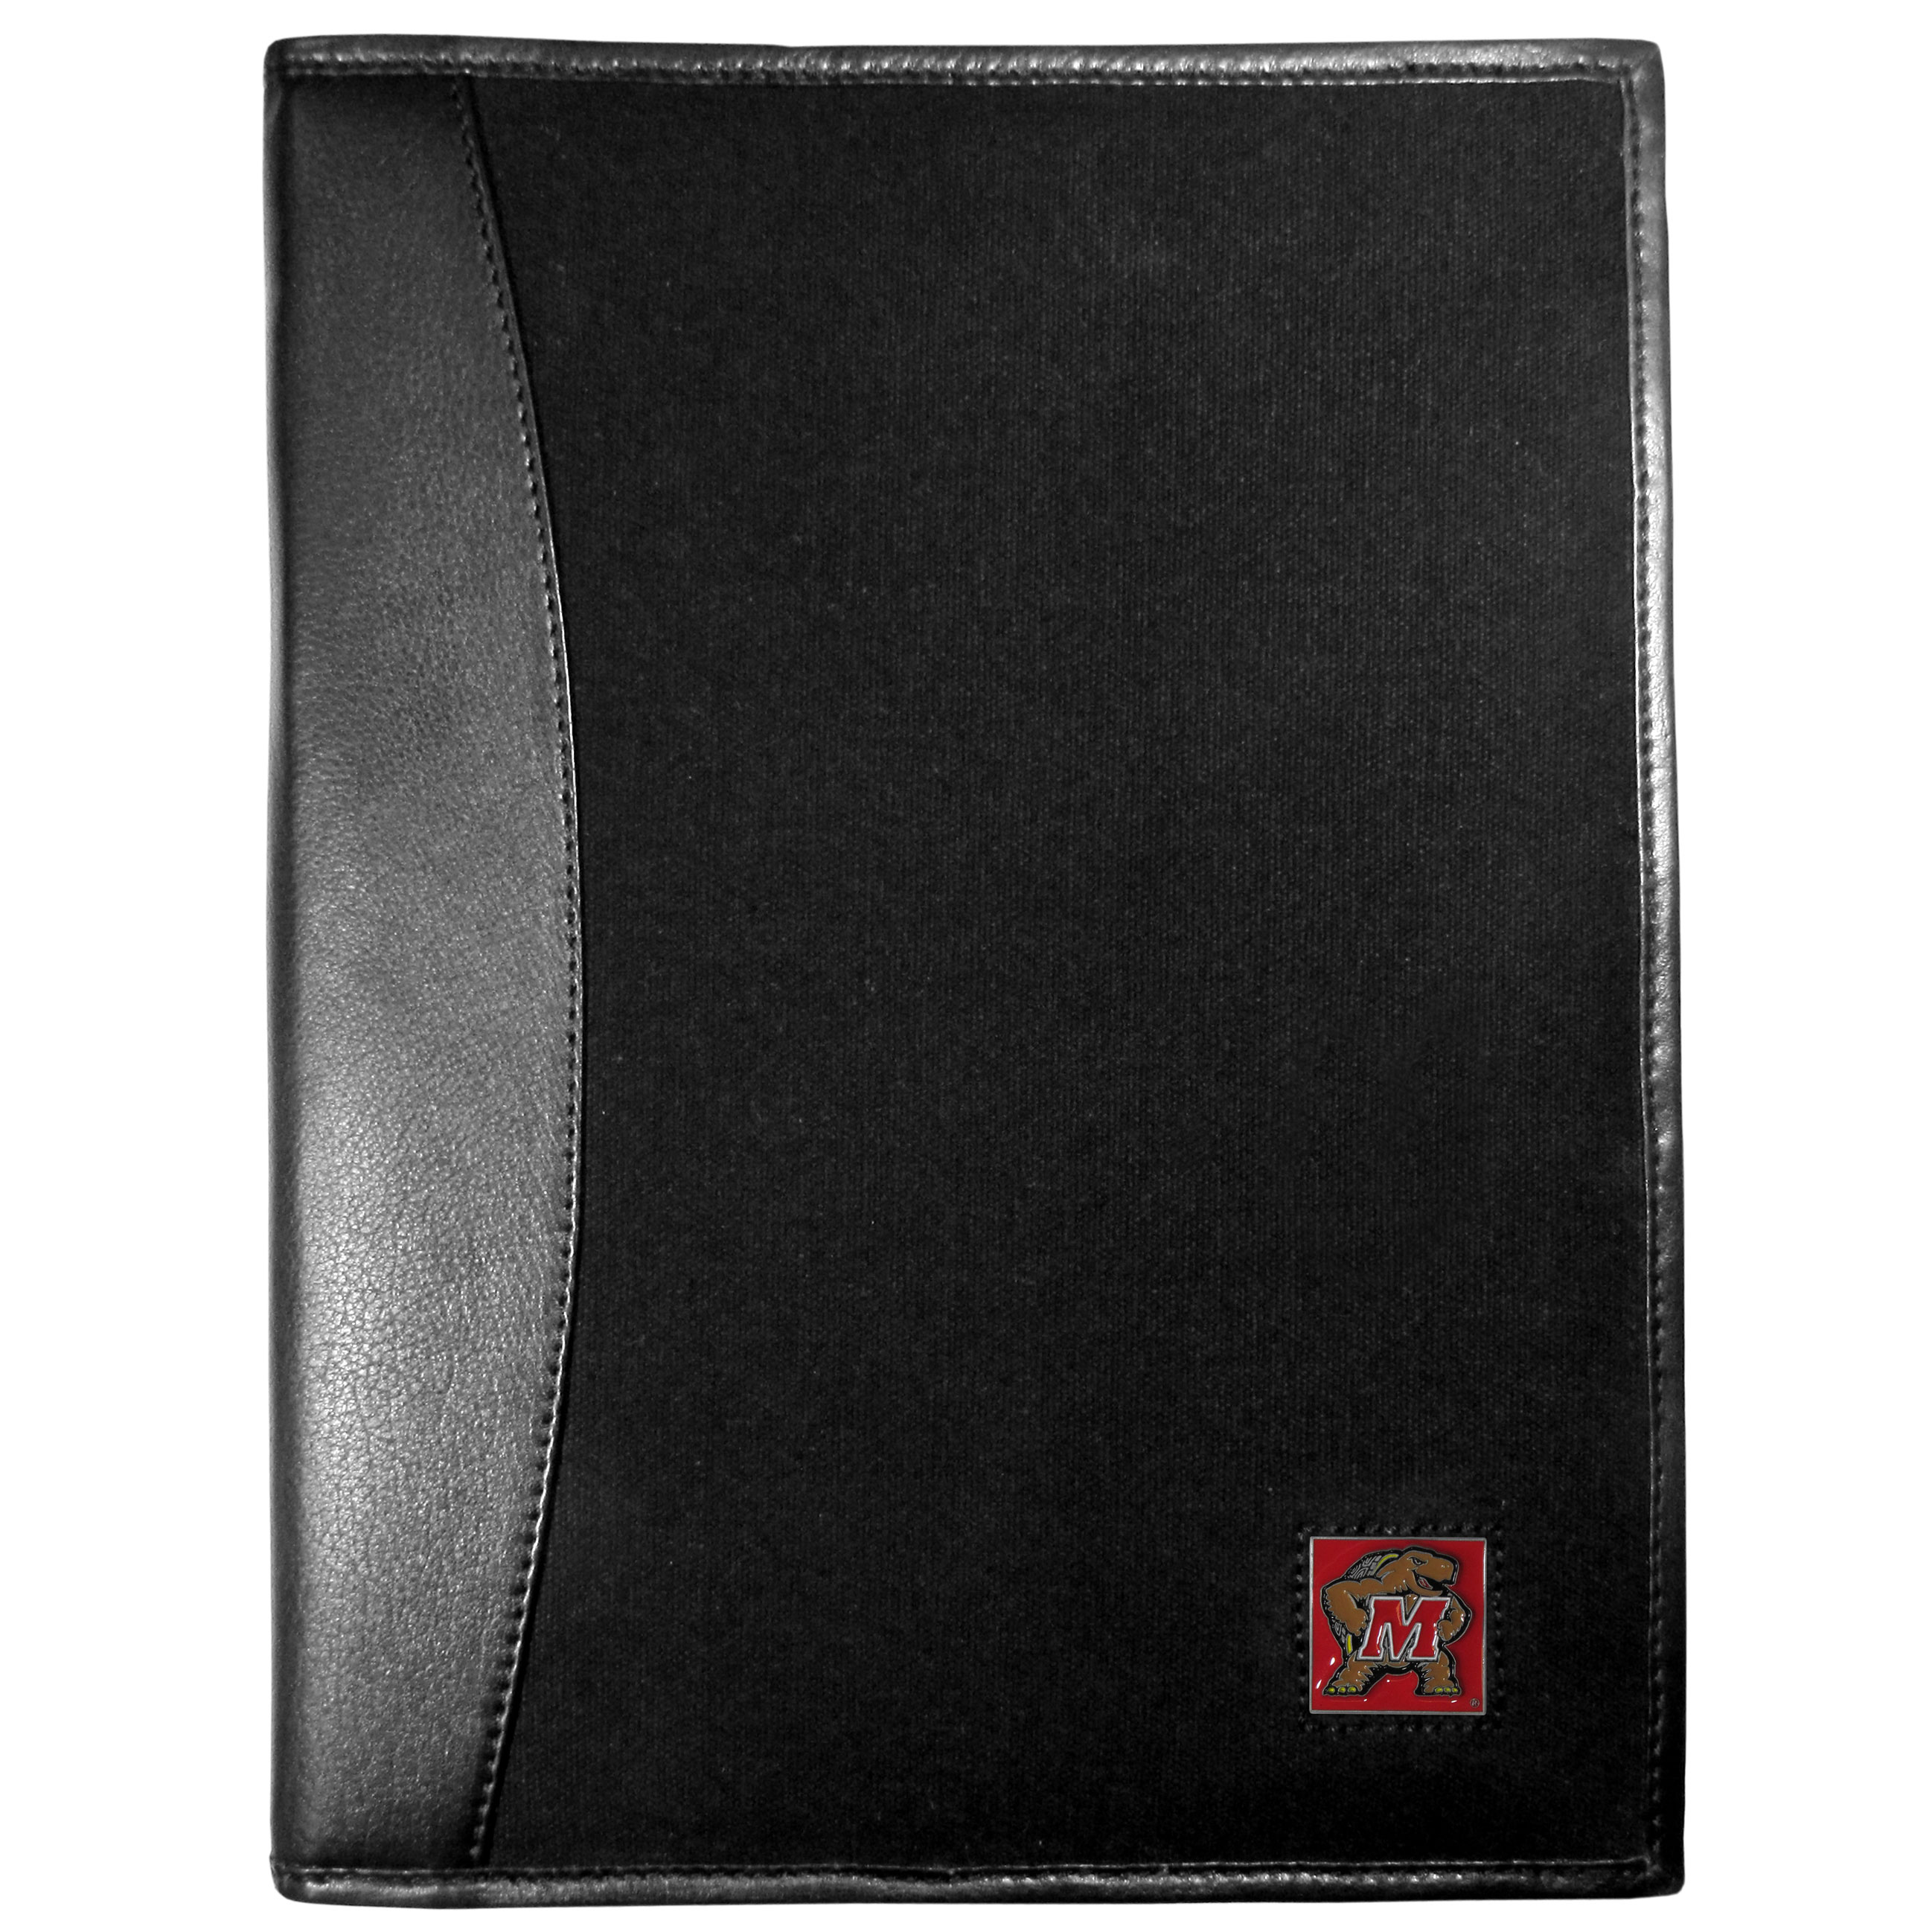 Maryland Terrapins Leather and Canvas Padfolio - Our leather and canvas padfolio perfectly blends form and function. The attractive portfolio is bound in fine grain leather with an attractive canvas finish and the interior is a soft nylon. This high quality business accessory also features a fully cast metal Maryland Terrapins emblem that is subtly set in the corner of the organizer. It is packed with features like 6 card slots for badges, business cards, hotel keys or credit cards and ID with a large pocket for loose papers and a writing tablet slot making it a must-have for the professional on the go.